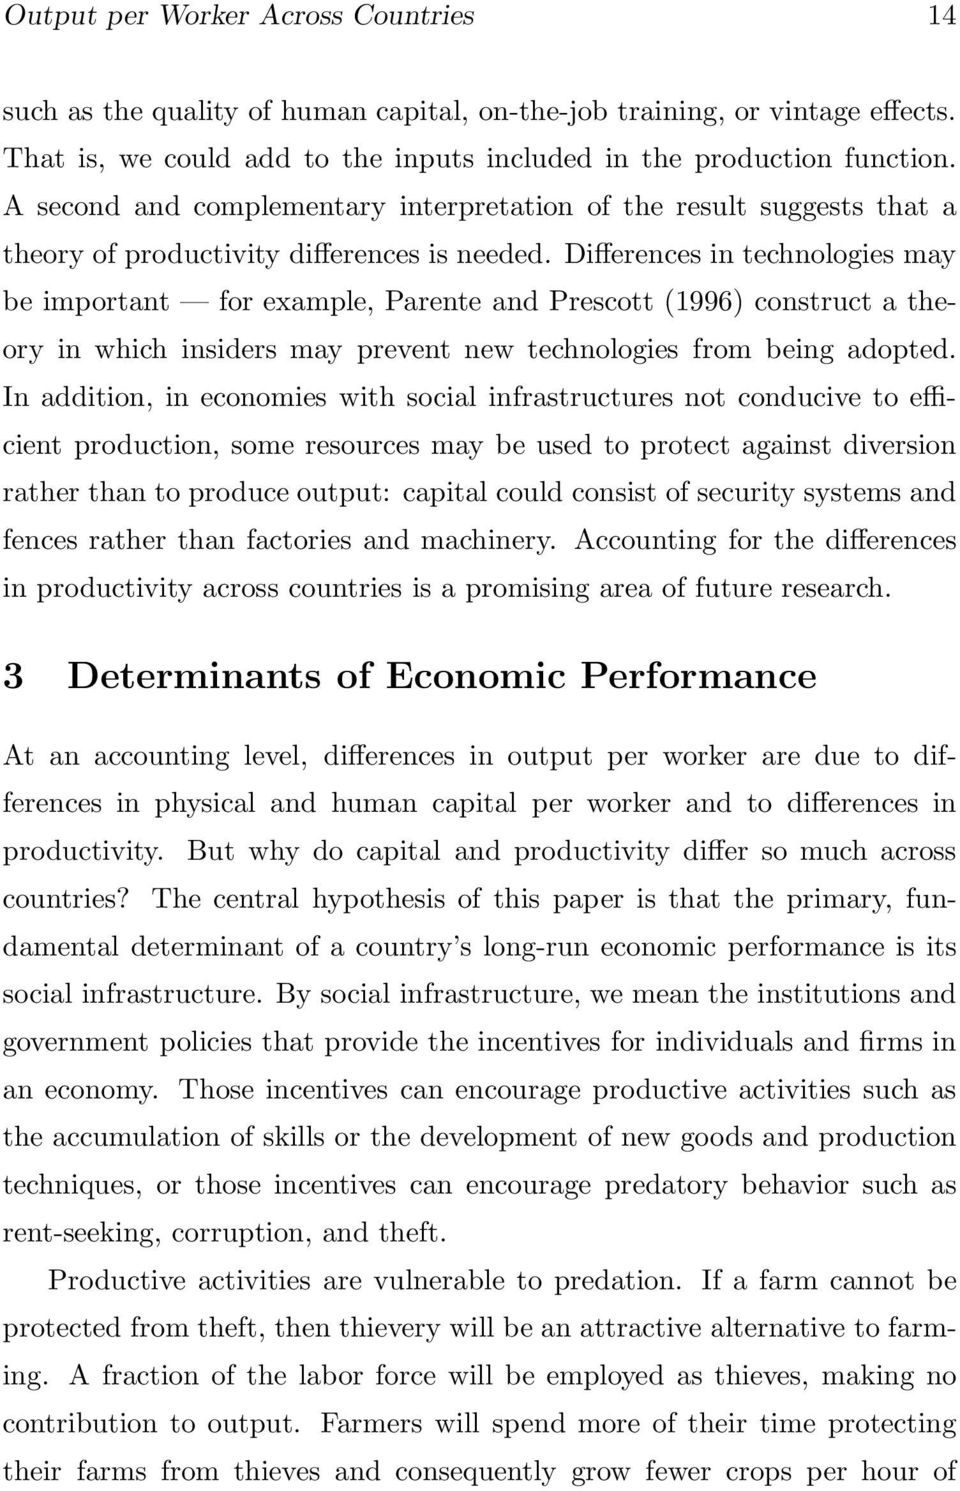 Differences in technologies may be important for example, Parente and Prescott (1996) construct a theory in which insiders may prevent new technologies from being adopted.